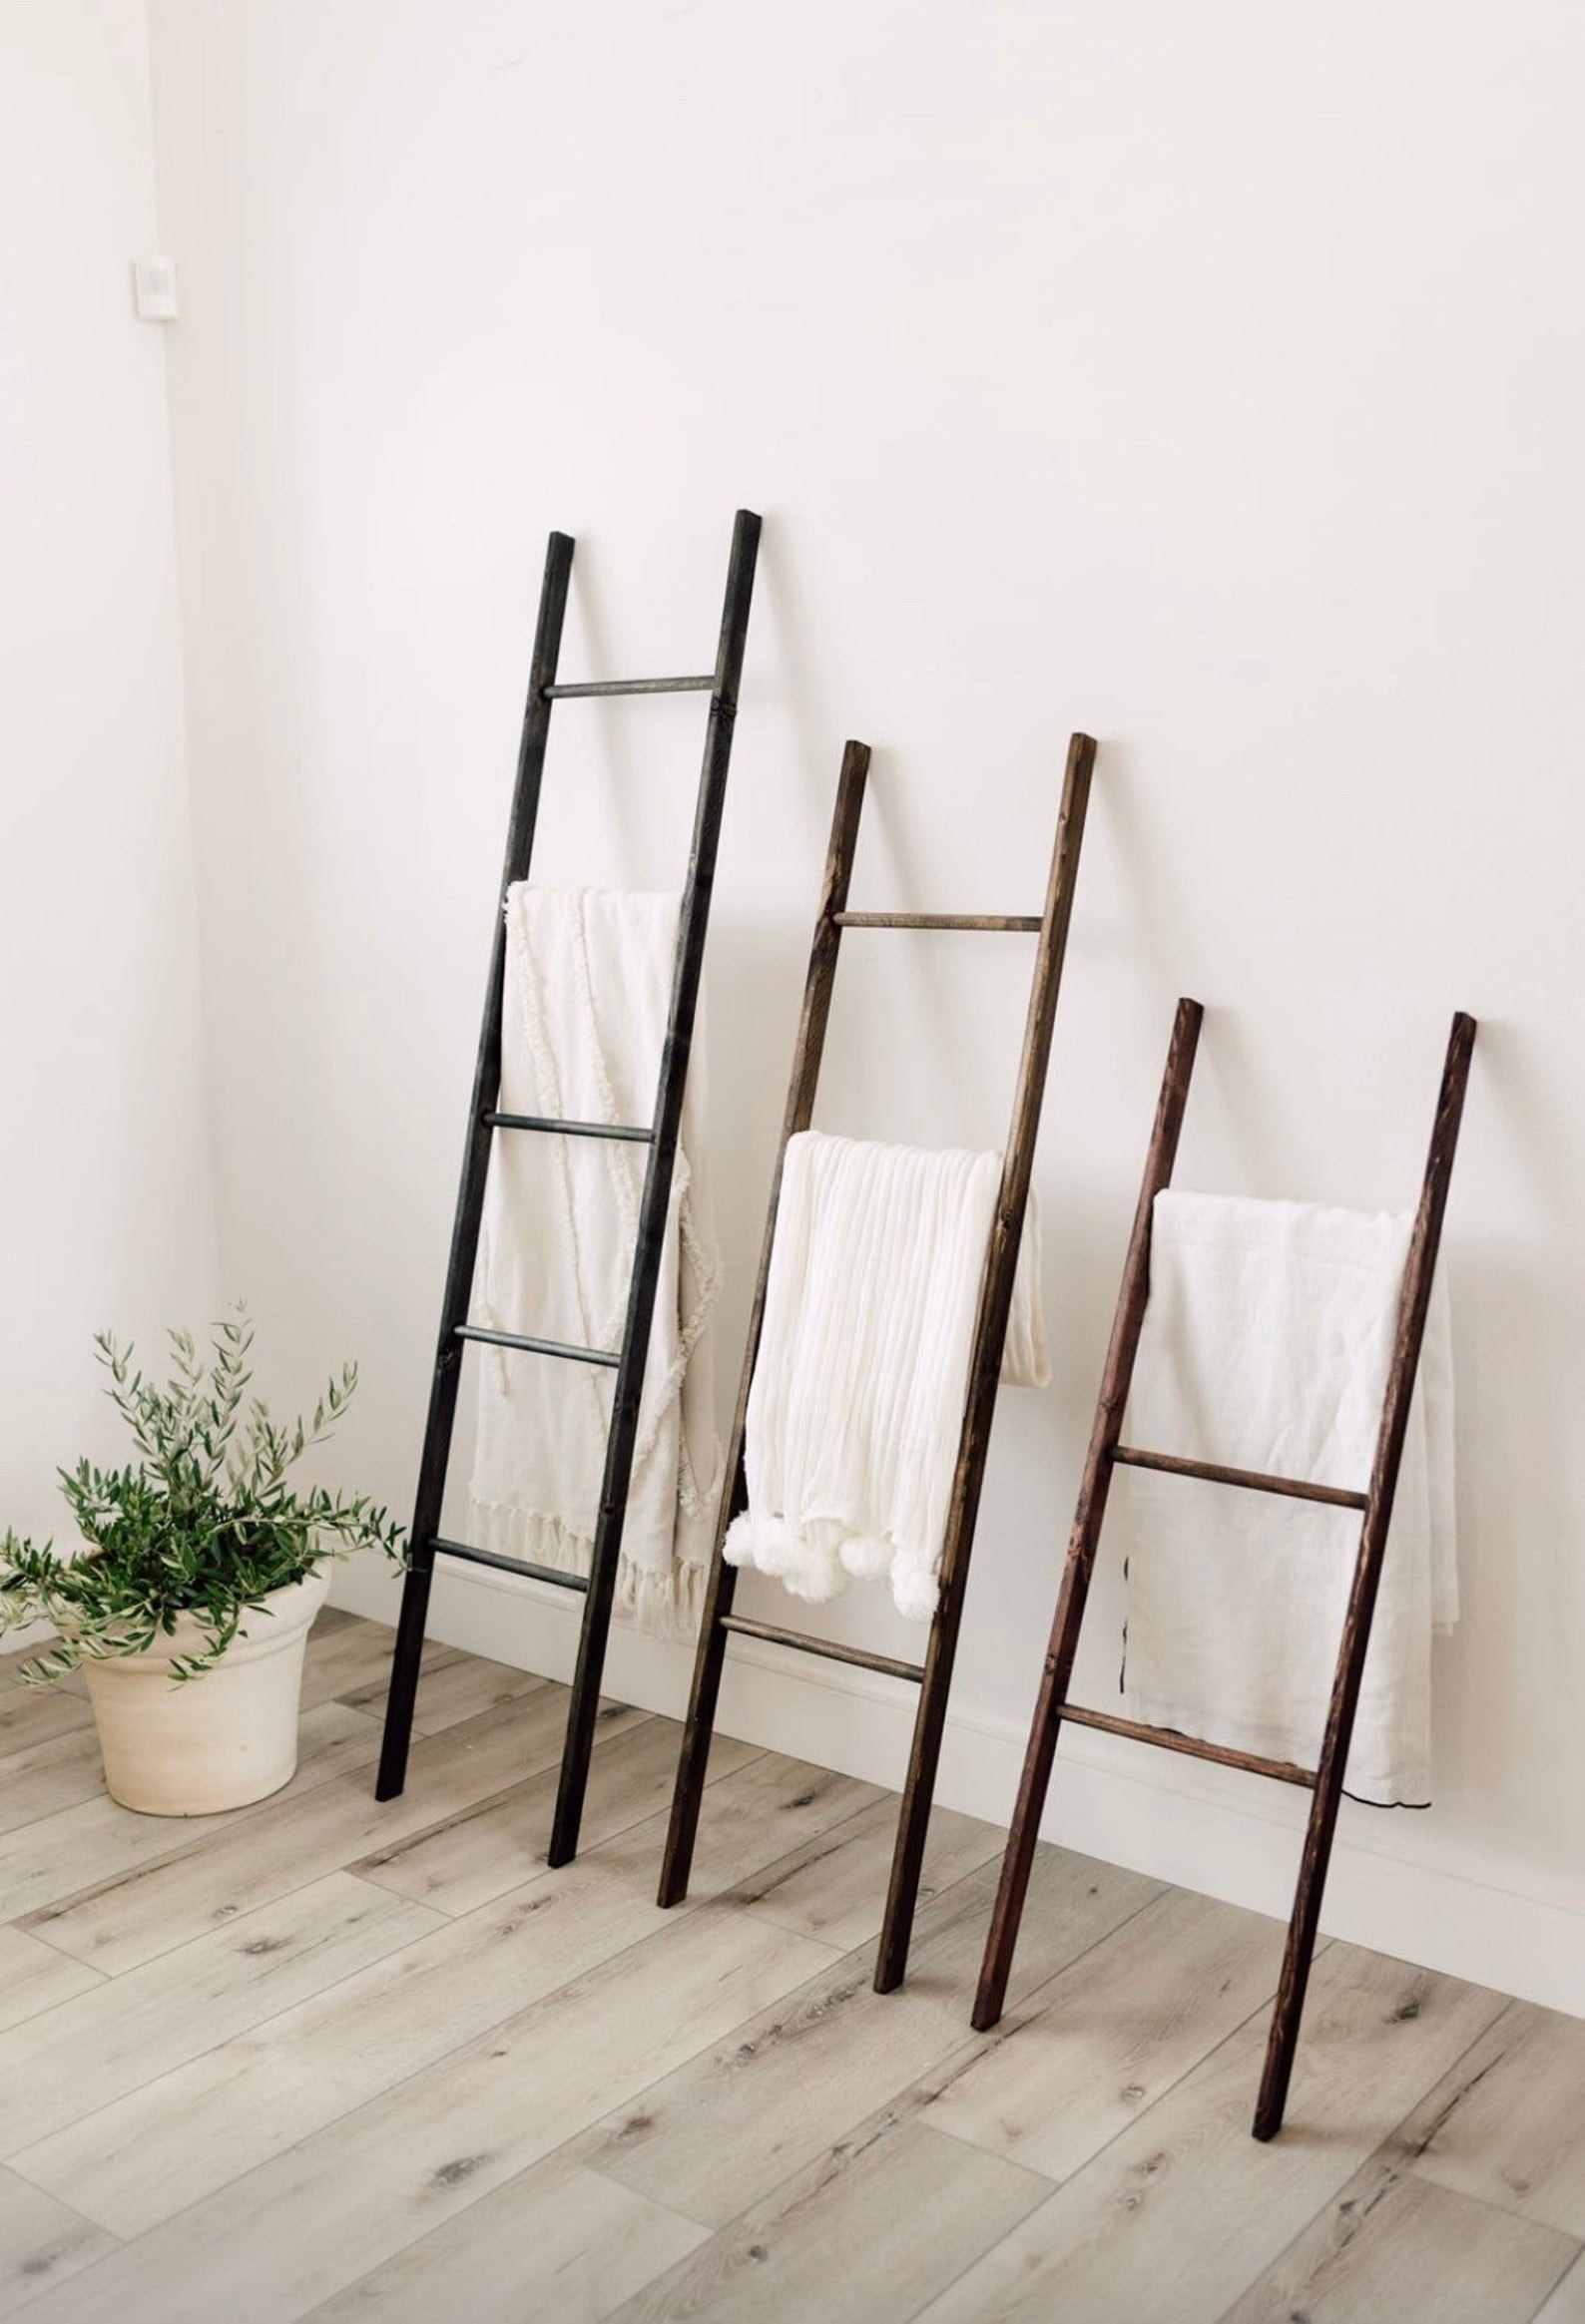 three blanket ladders of different heights lean against a wall, each with a blanket hanging from a rung